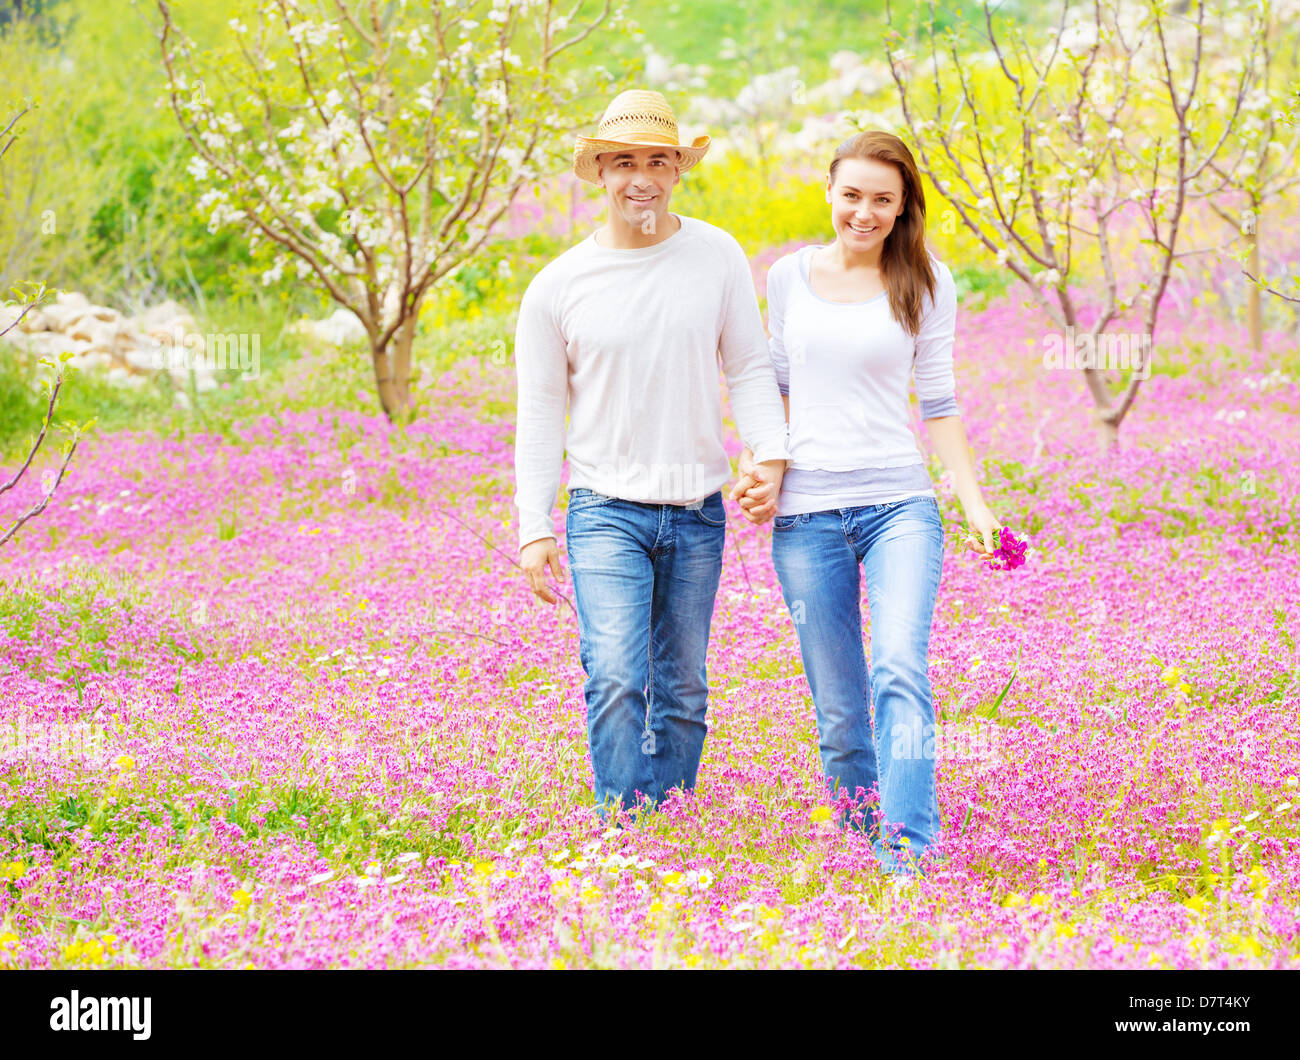 Two cheerful lovers walking in spring garden, having fun outdoors, relaxation on backyard, romance and love concept - Stock Image